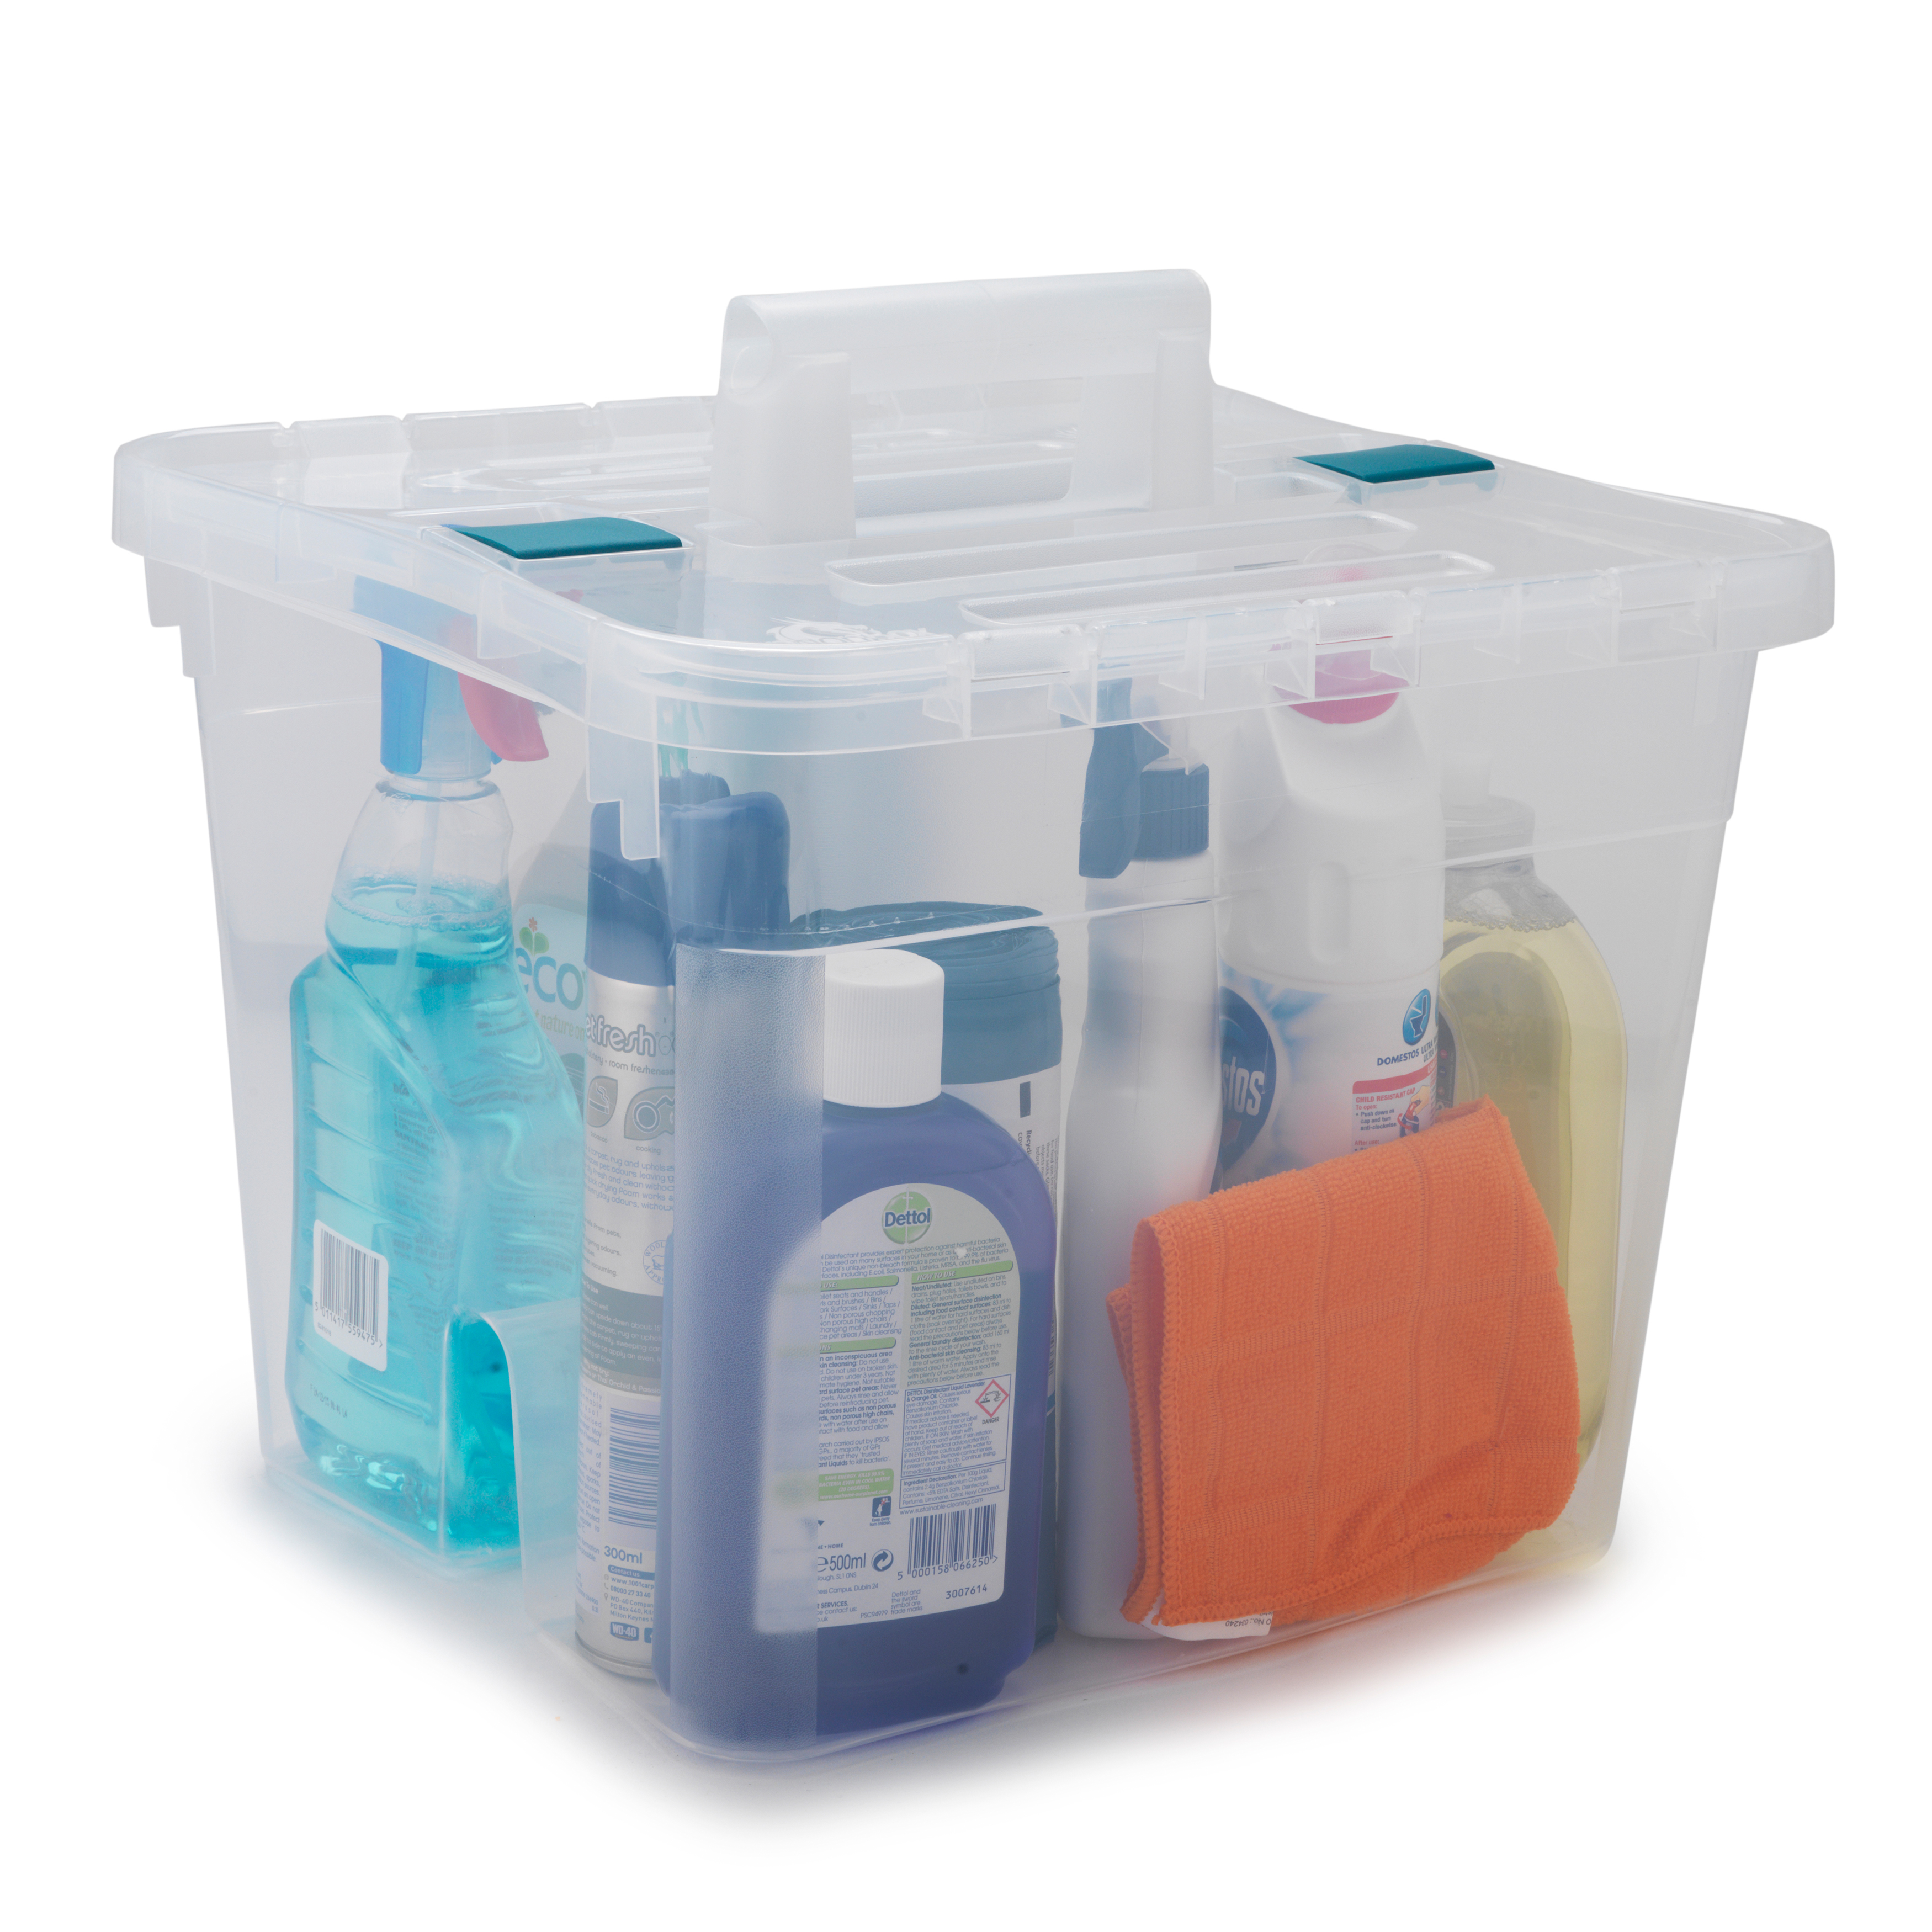 Beldray LA036759 Large Clear Caddy with Lid | Domestic Cleaning ...